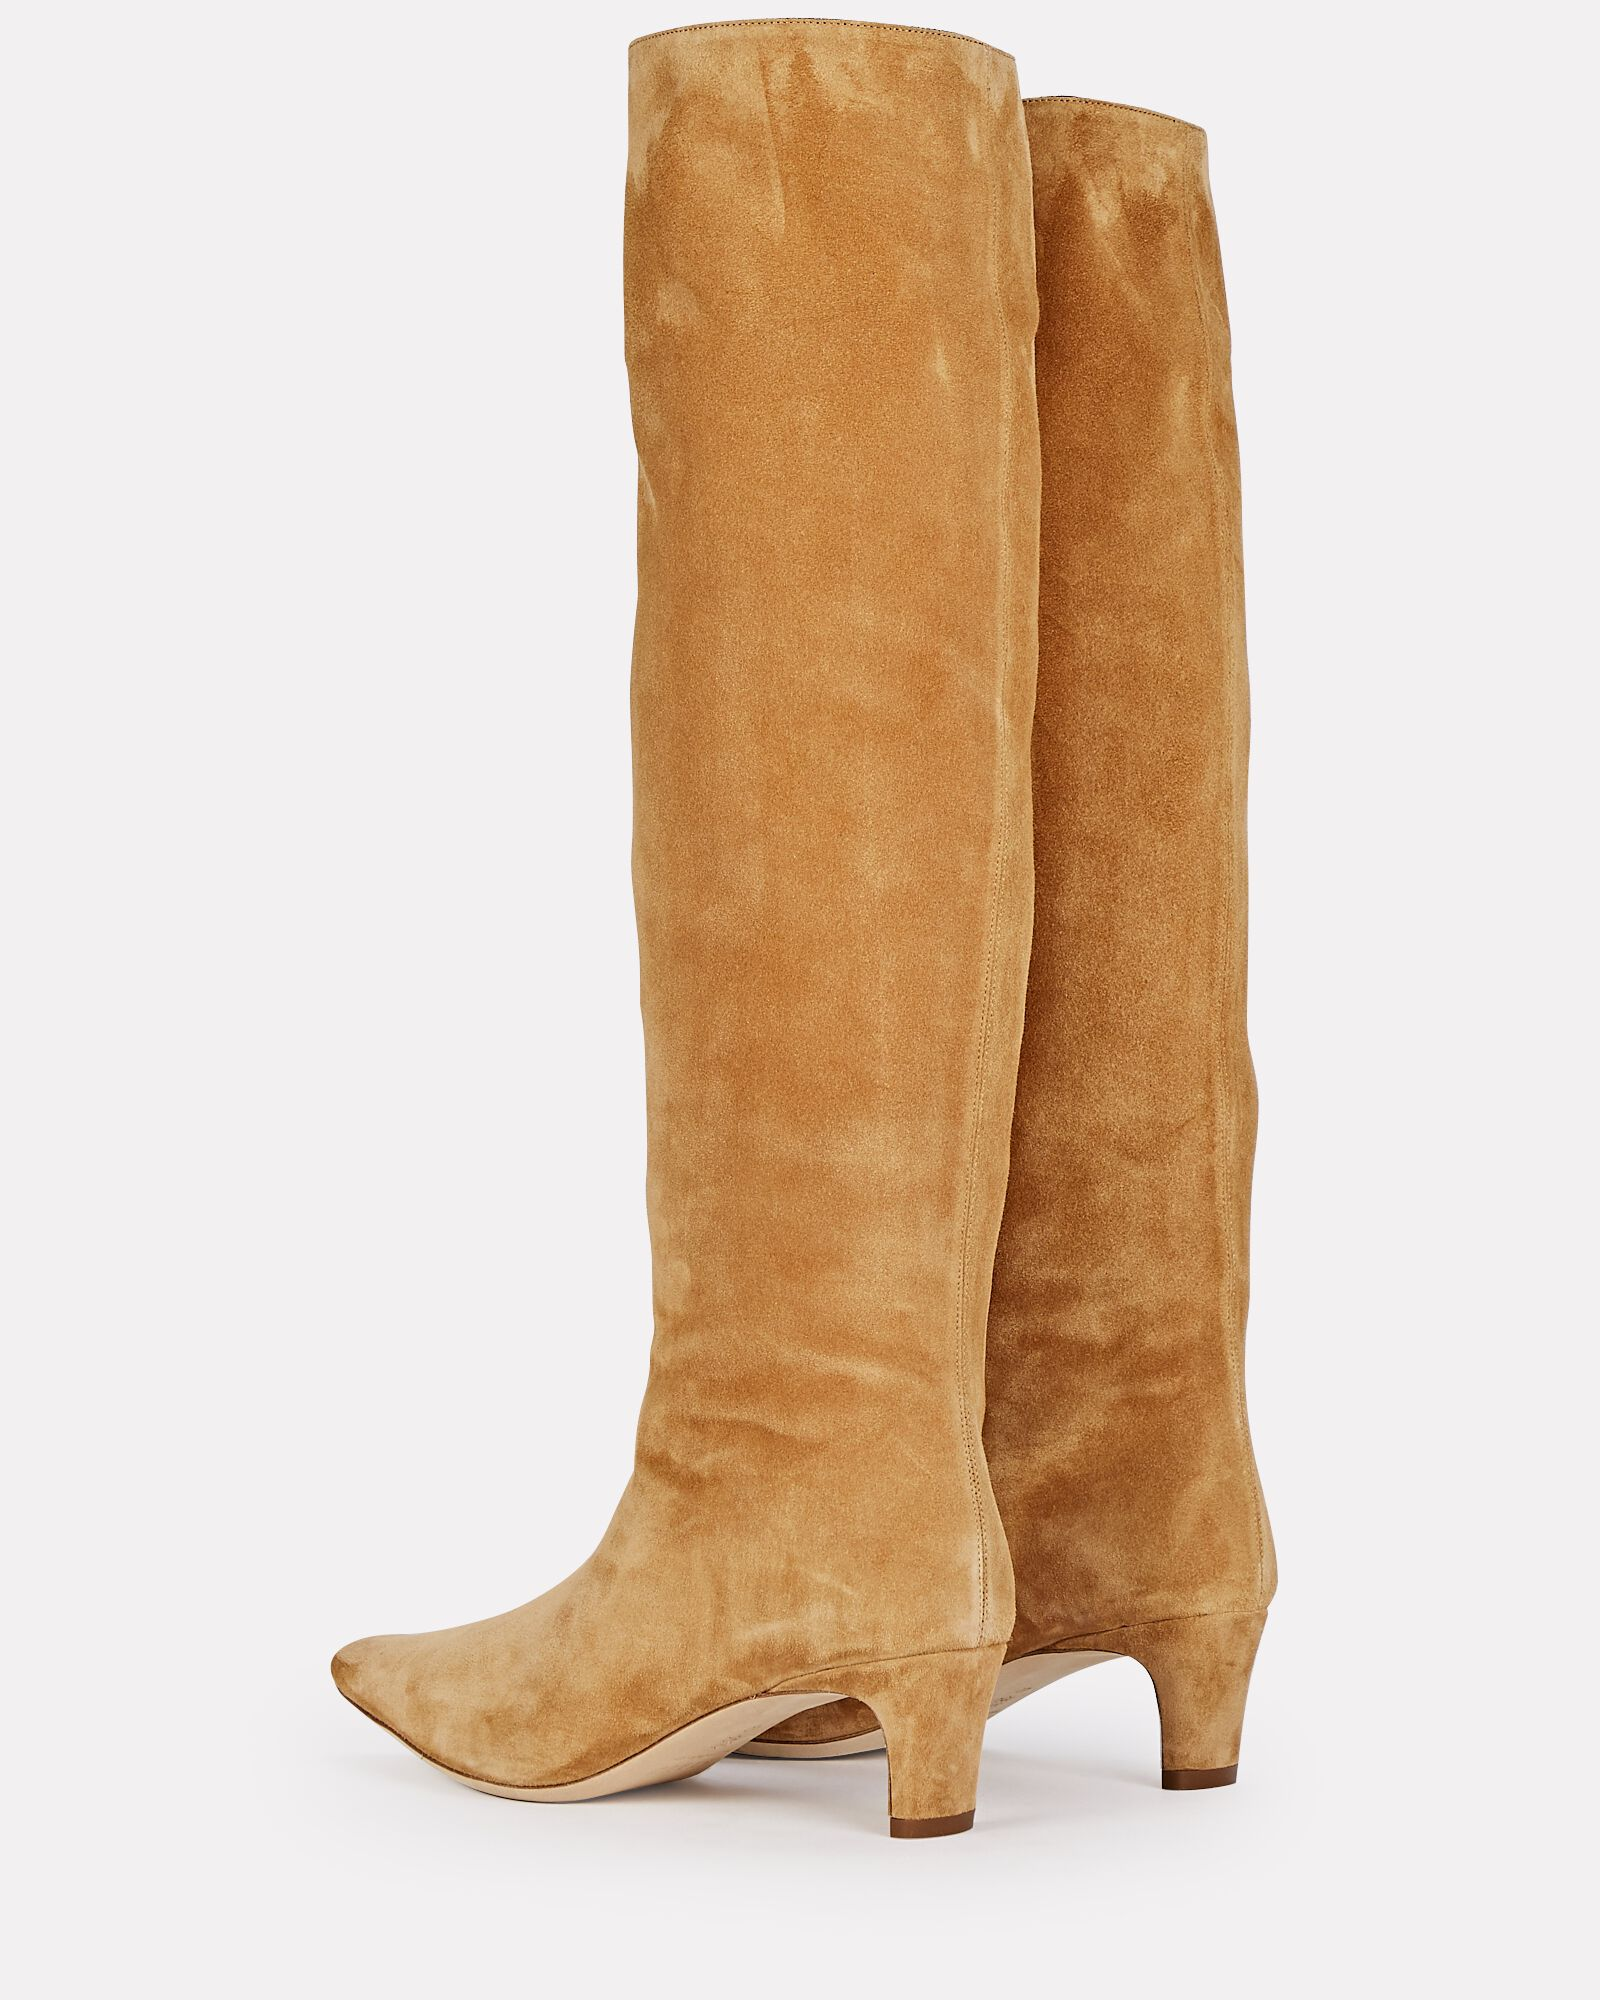 Wally Suede Knee-High Boots, BROWN, hi-res